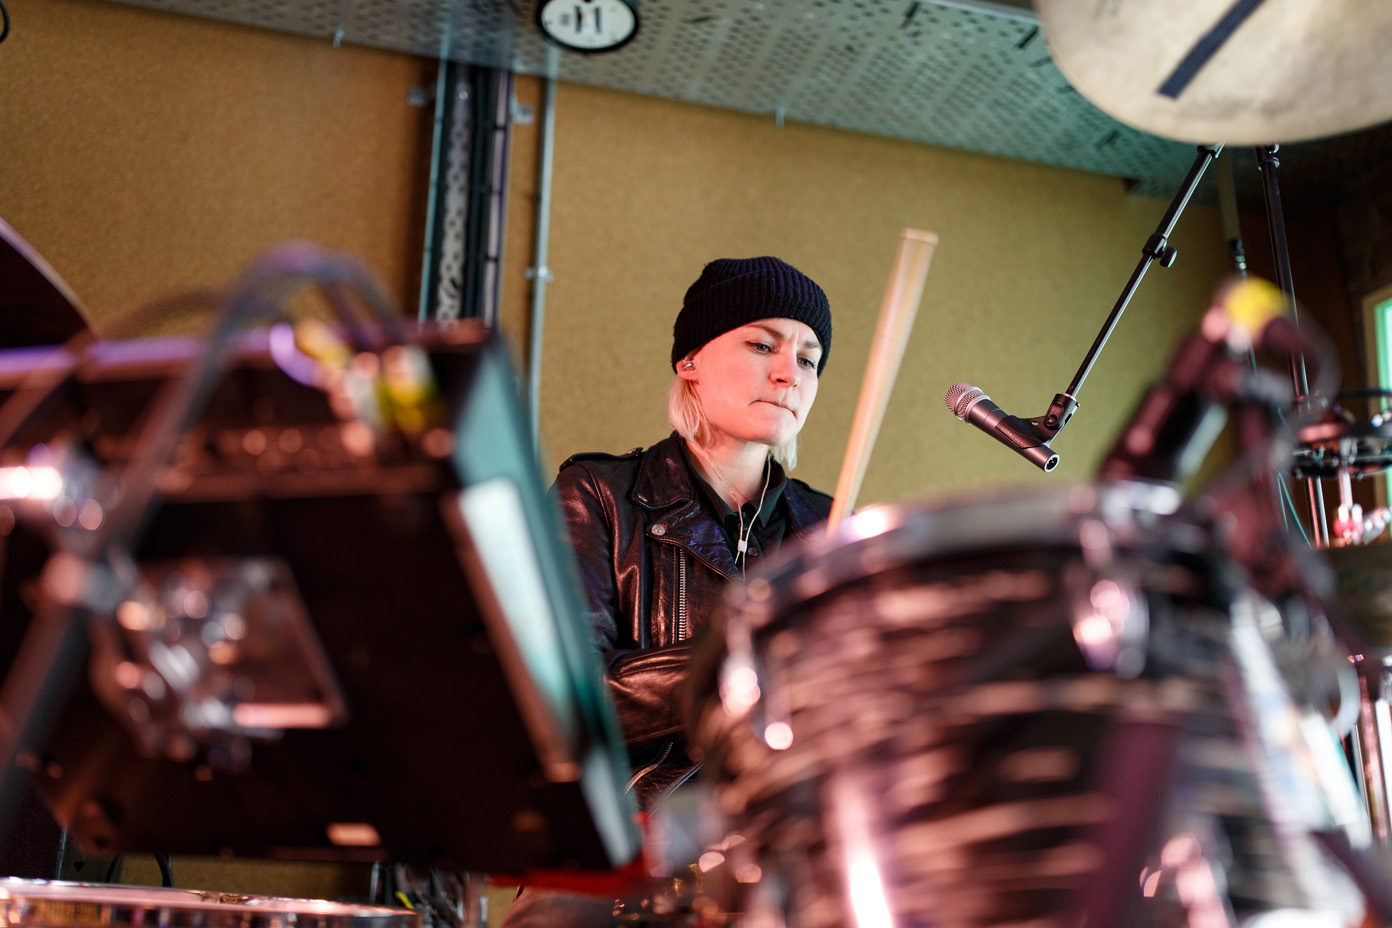 Maria Juntunen drumming during soundcheck